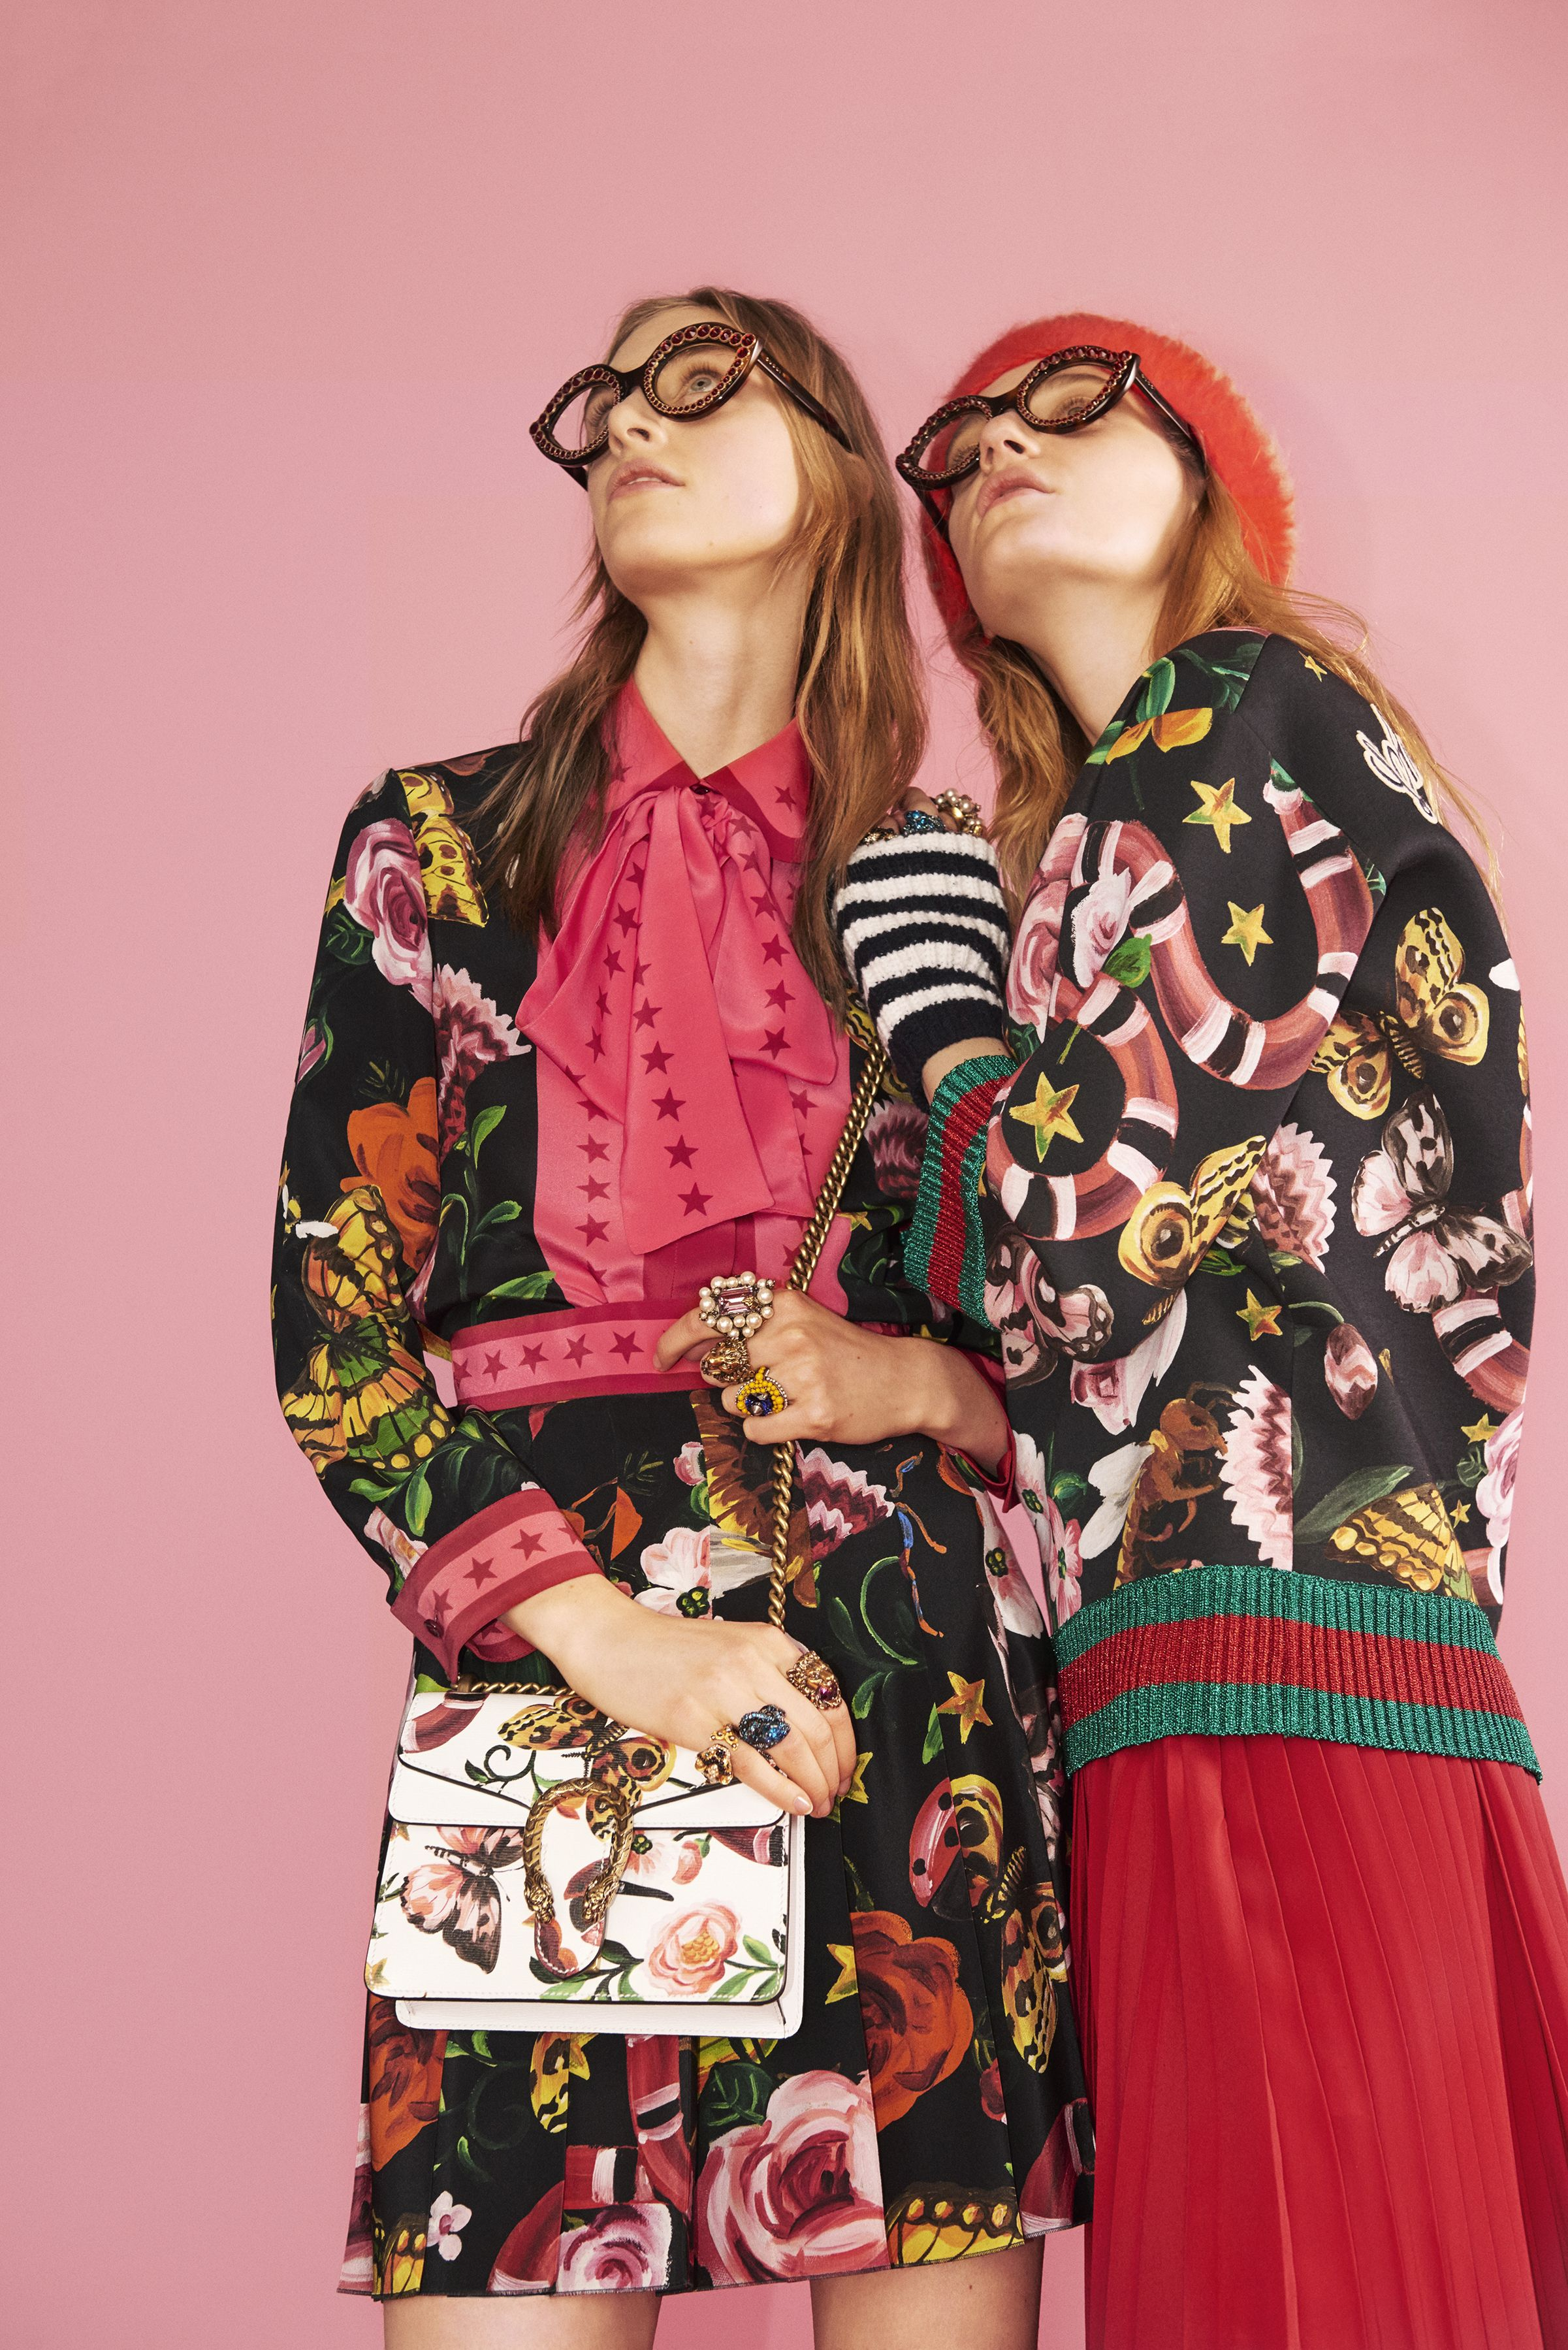 d0484a9c23954 In the Gucci Garden collection, the print is specially placed on fabric to  ensure each